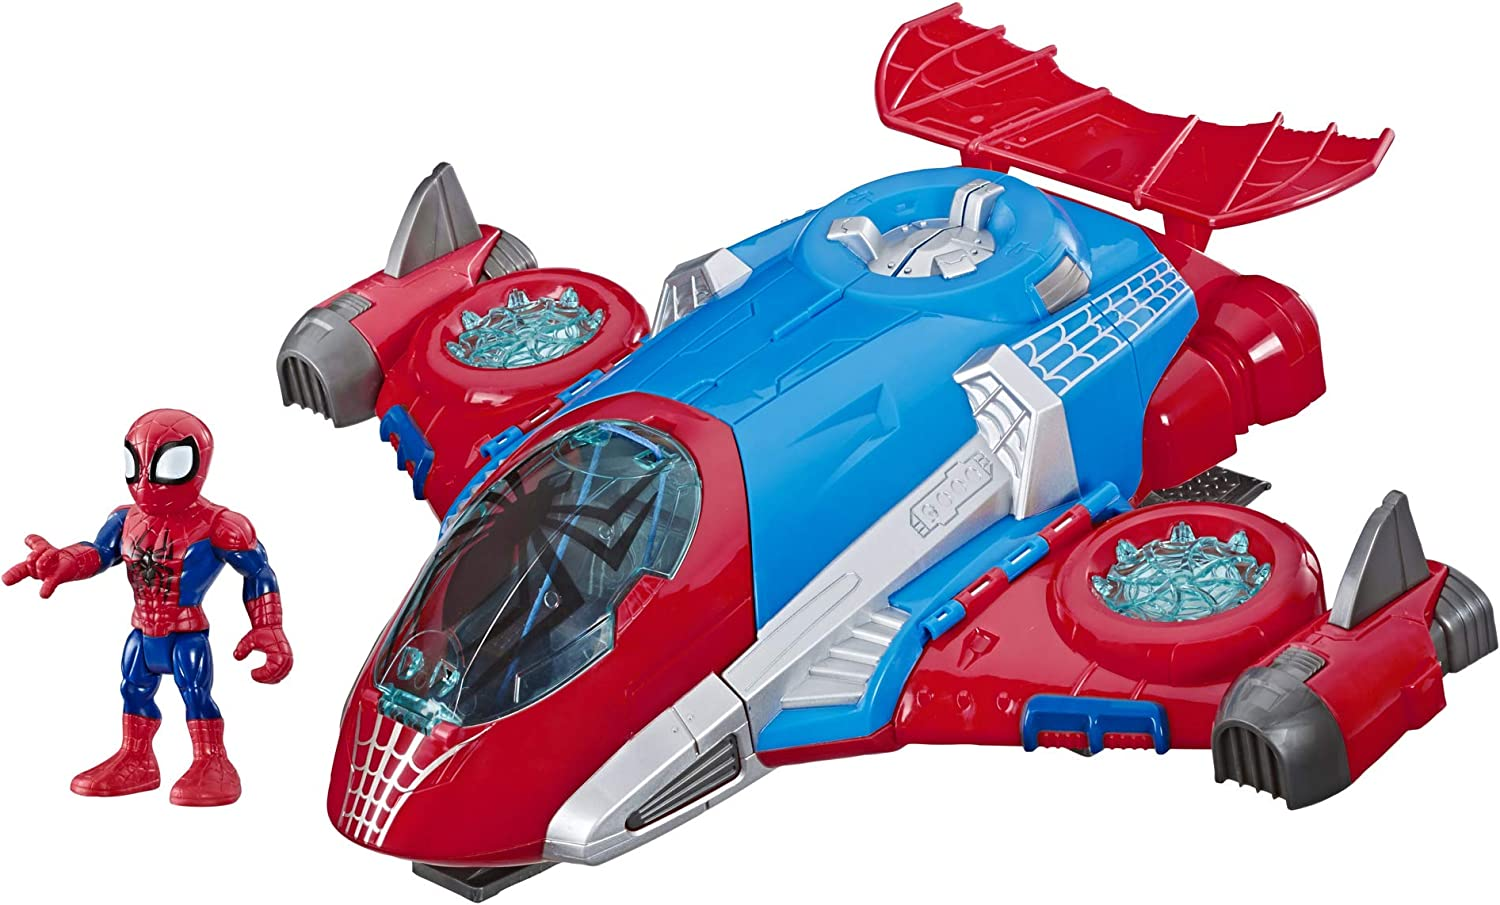 Super Hero Adventures Playskool Heroes Marvel Spider-Man Jetquarters, 5-Inch Action Figure and Vehicle Set, Toy Jet, Collectible Toys for Kids from 3 Years Old